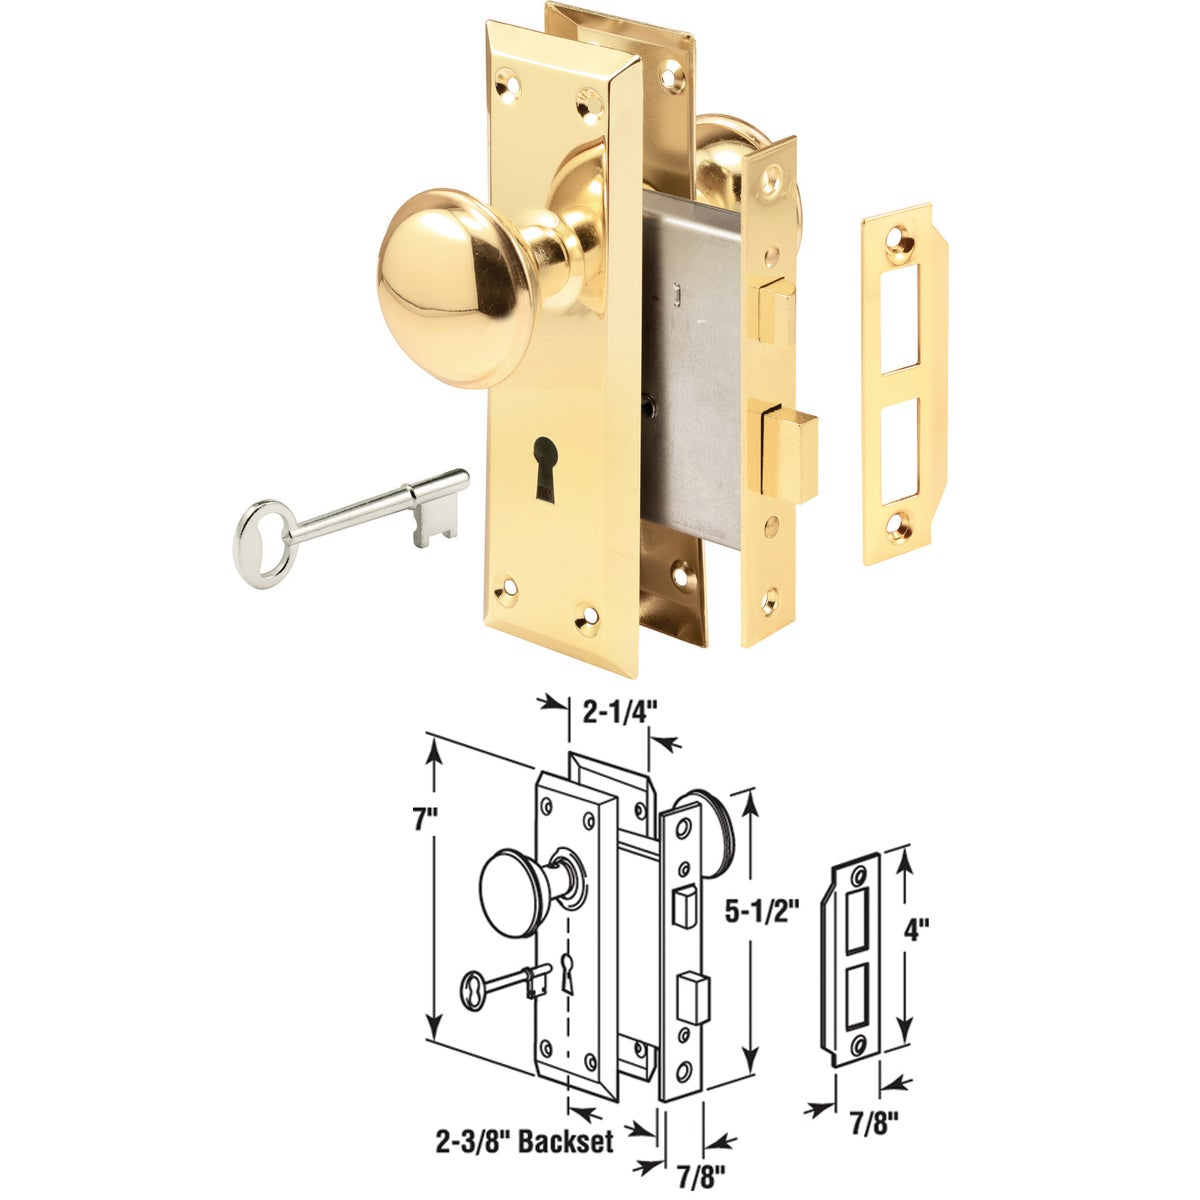 BIT KEY MORTISE LOCKSET